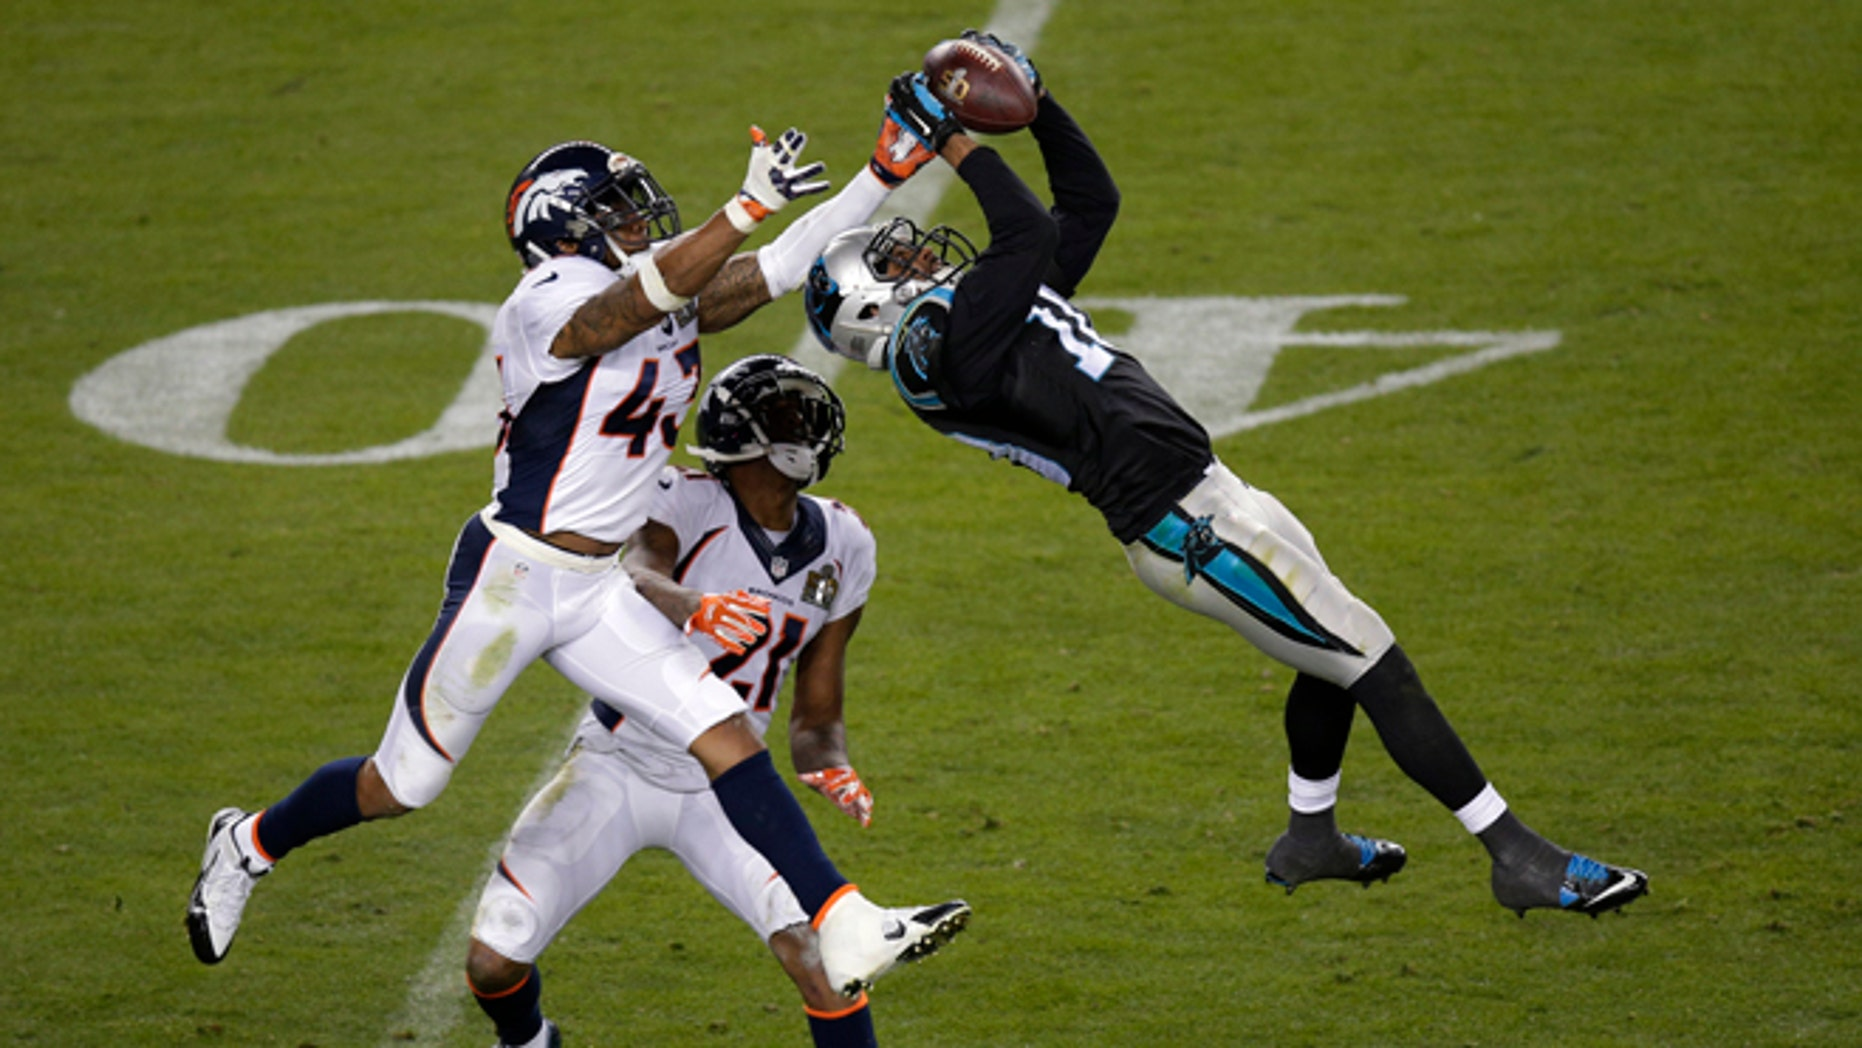 FILE - In this Feb. 7, 2016, file photo, Carolina Panthers' Corey Brown (10) catches a pass in front of Denver Broncos' T.J. Ward (43) and Aqib Talib (21) during the NFL Super Bowl 50 football game in Santa Clara, Calif. The NFL season will begin the way the last one ended, with the Broncos playing the Panthers. Denver beat Carolina 24-10 in February in the Super Bowl, Peyton Manning's final game. The rematch will be on Thursday night, Sept. 8 in Denver. (AP Photo/Charlie Riedel, File)